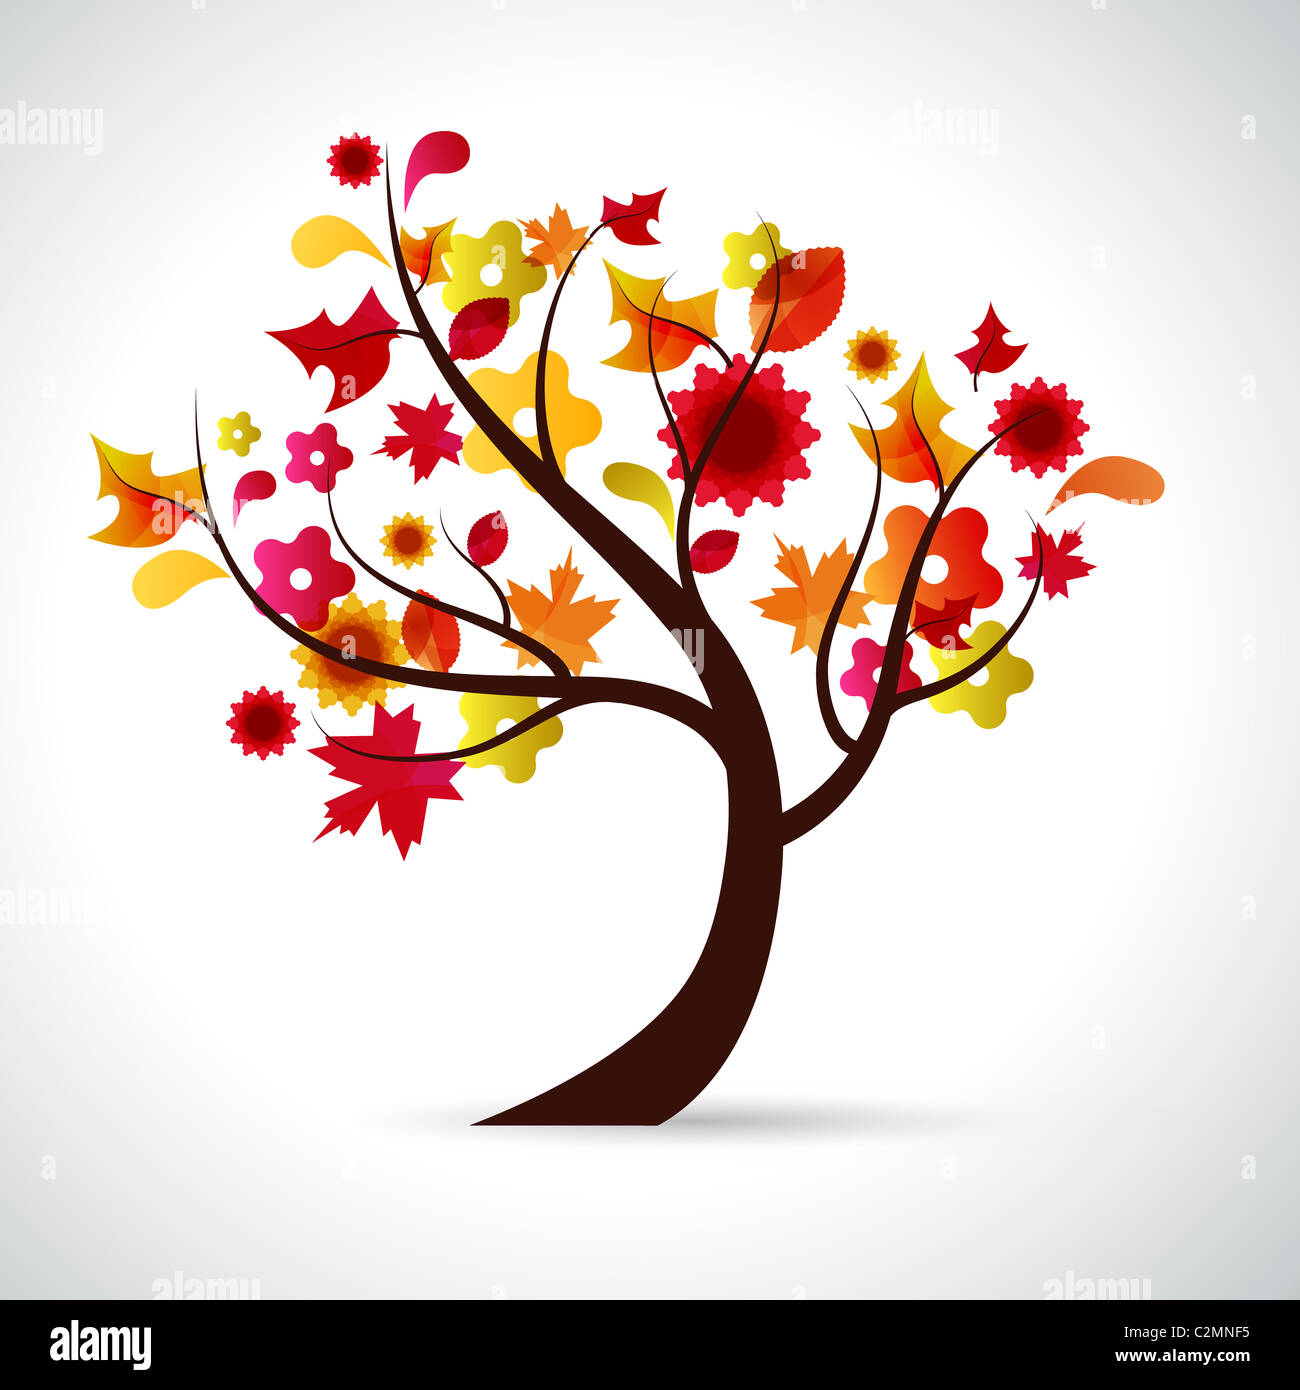 abstract illustration of a tree background for the season of autumn - Stock Image